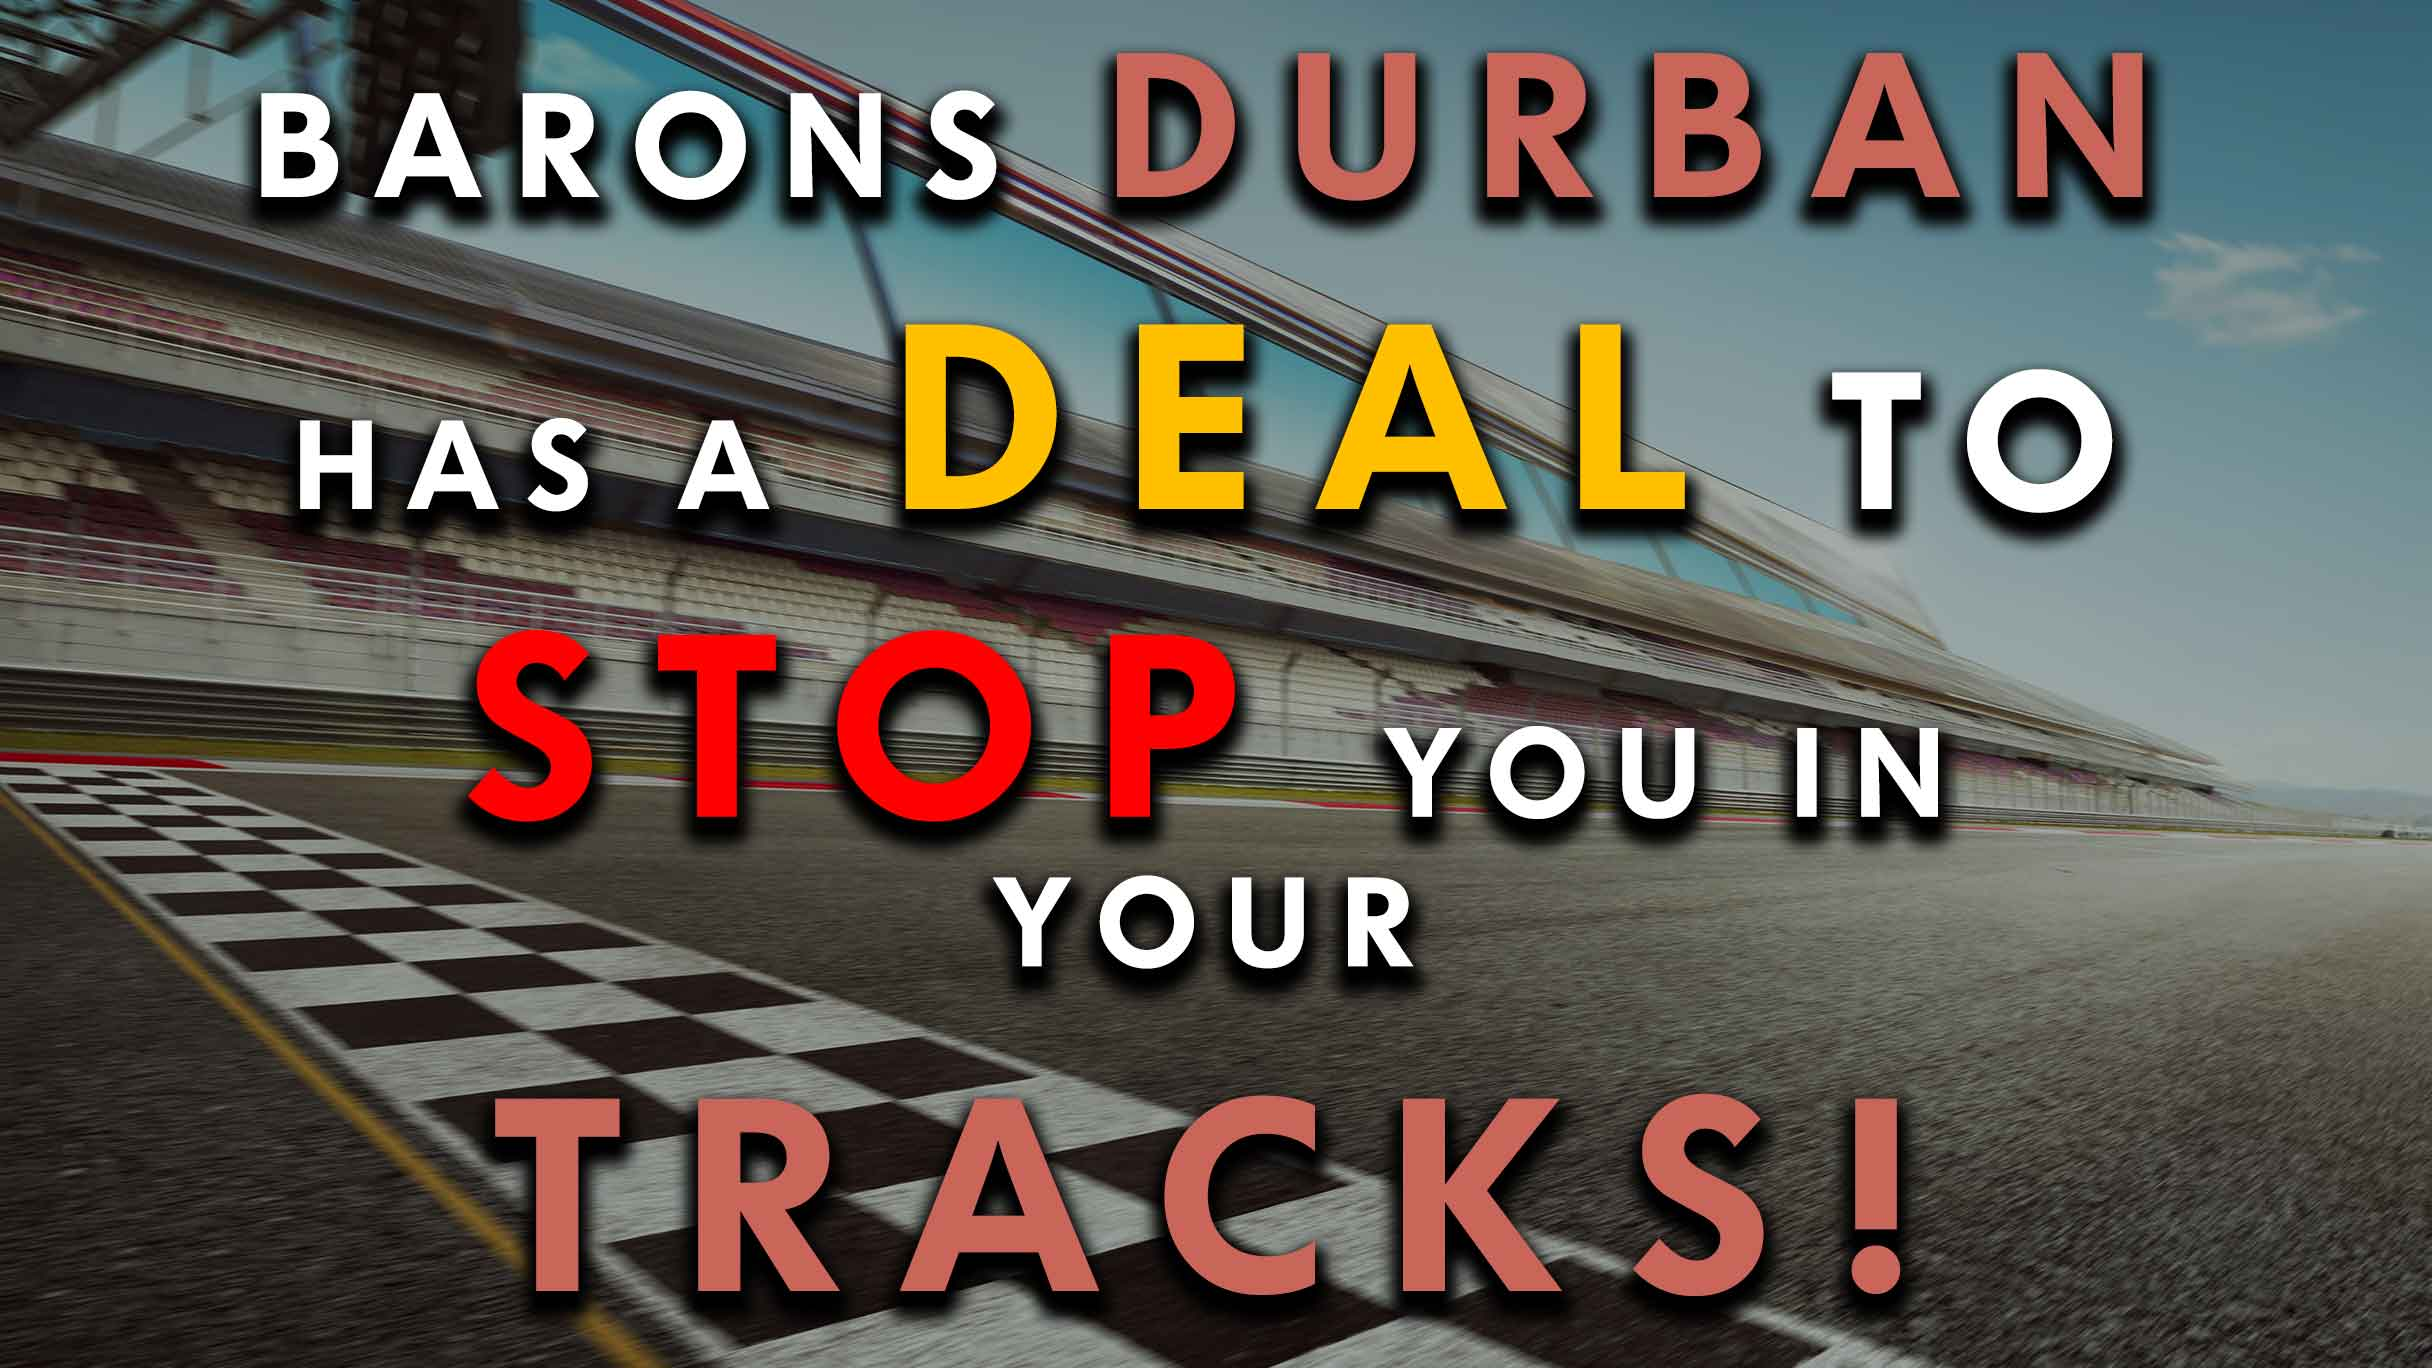 Barons Durban tyre offer